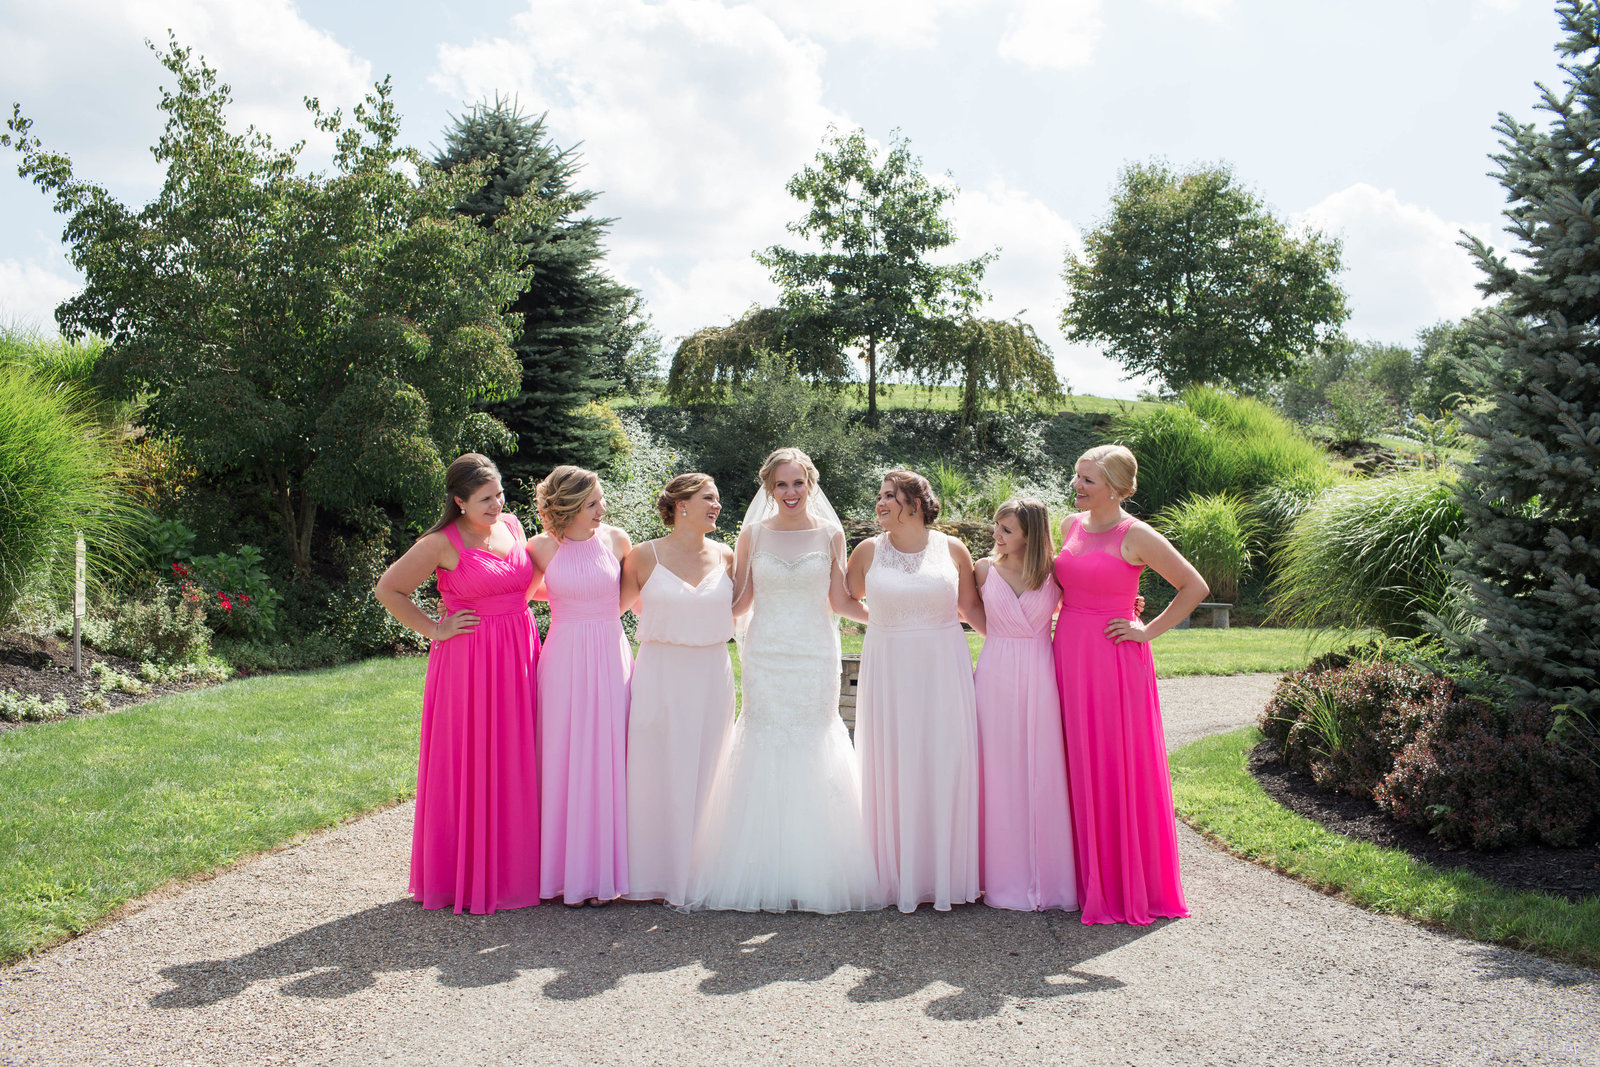 bridesmaids in varying shades of pink line up with bride on a pathway